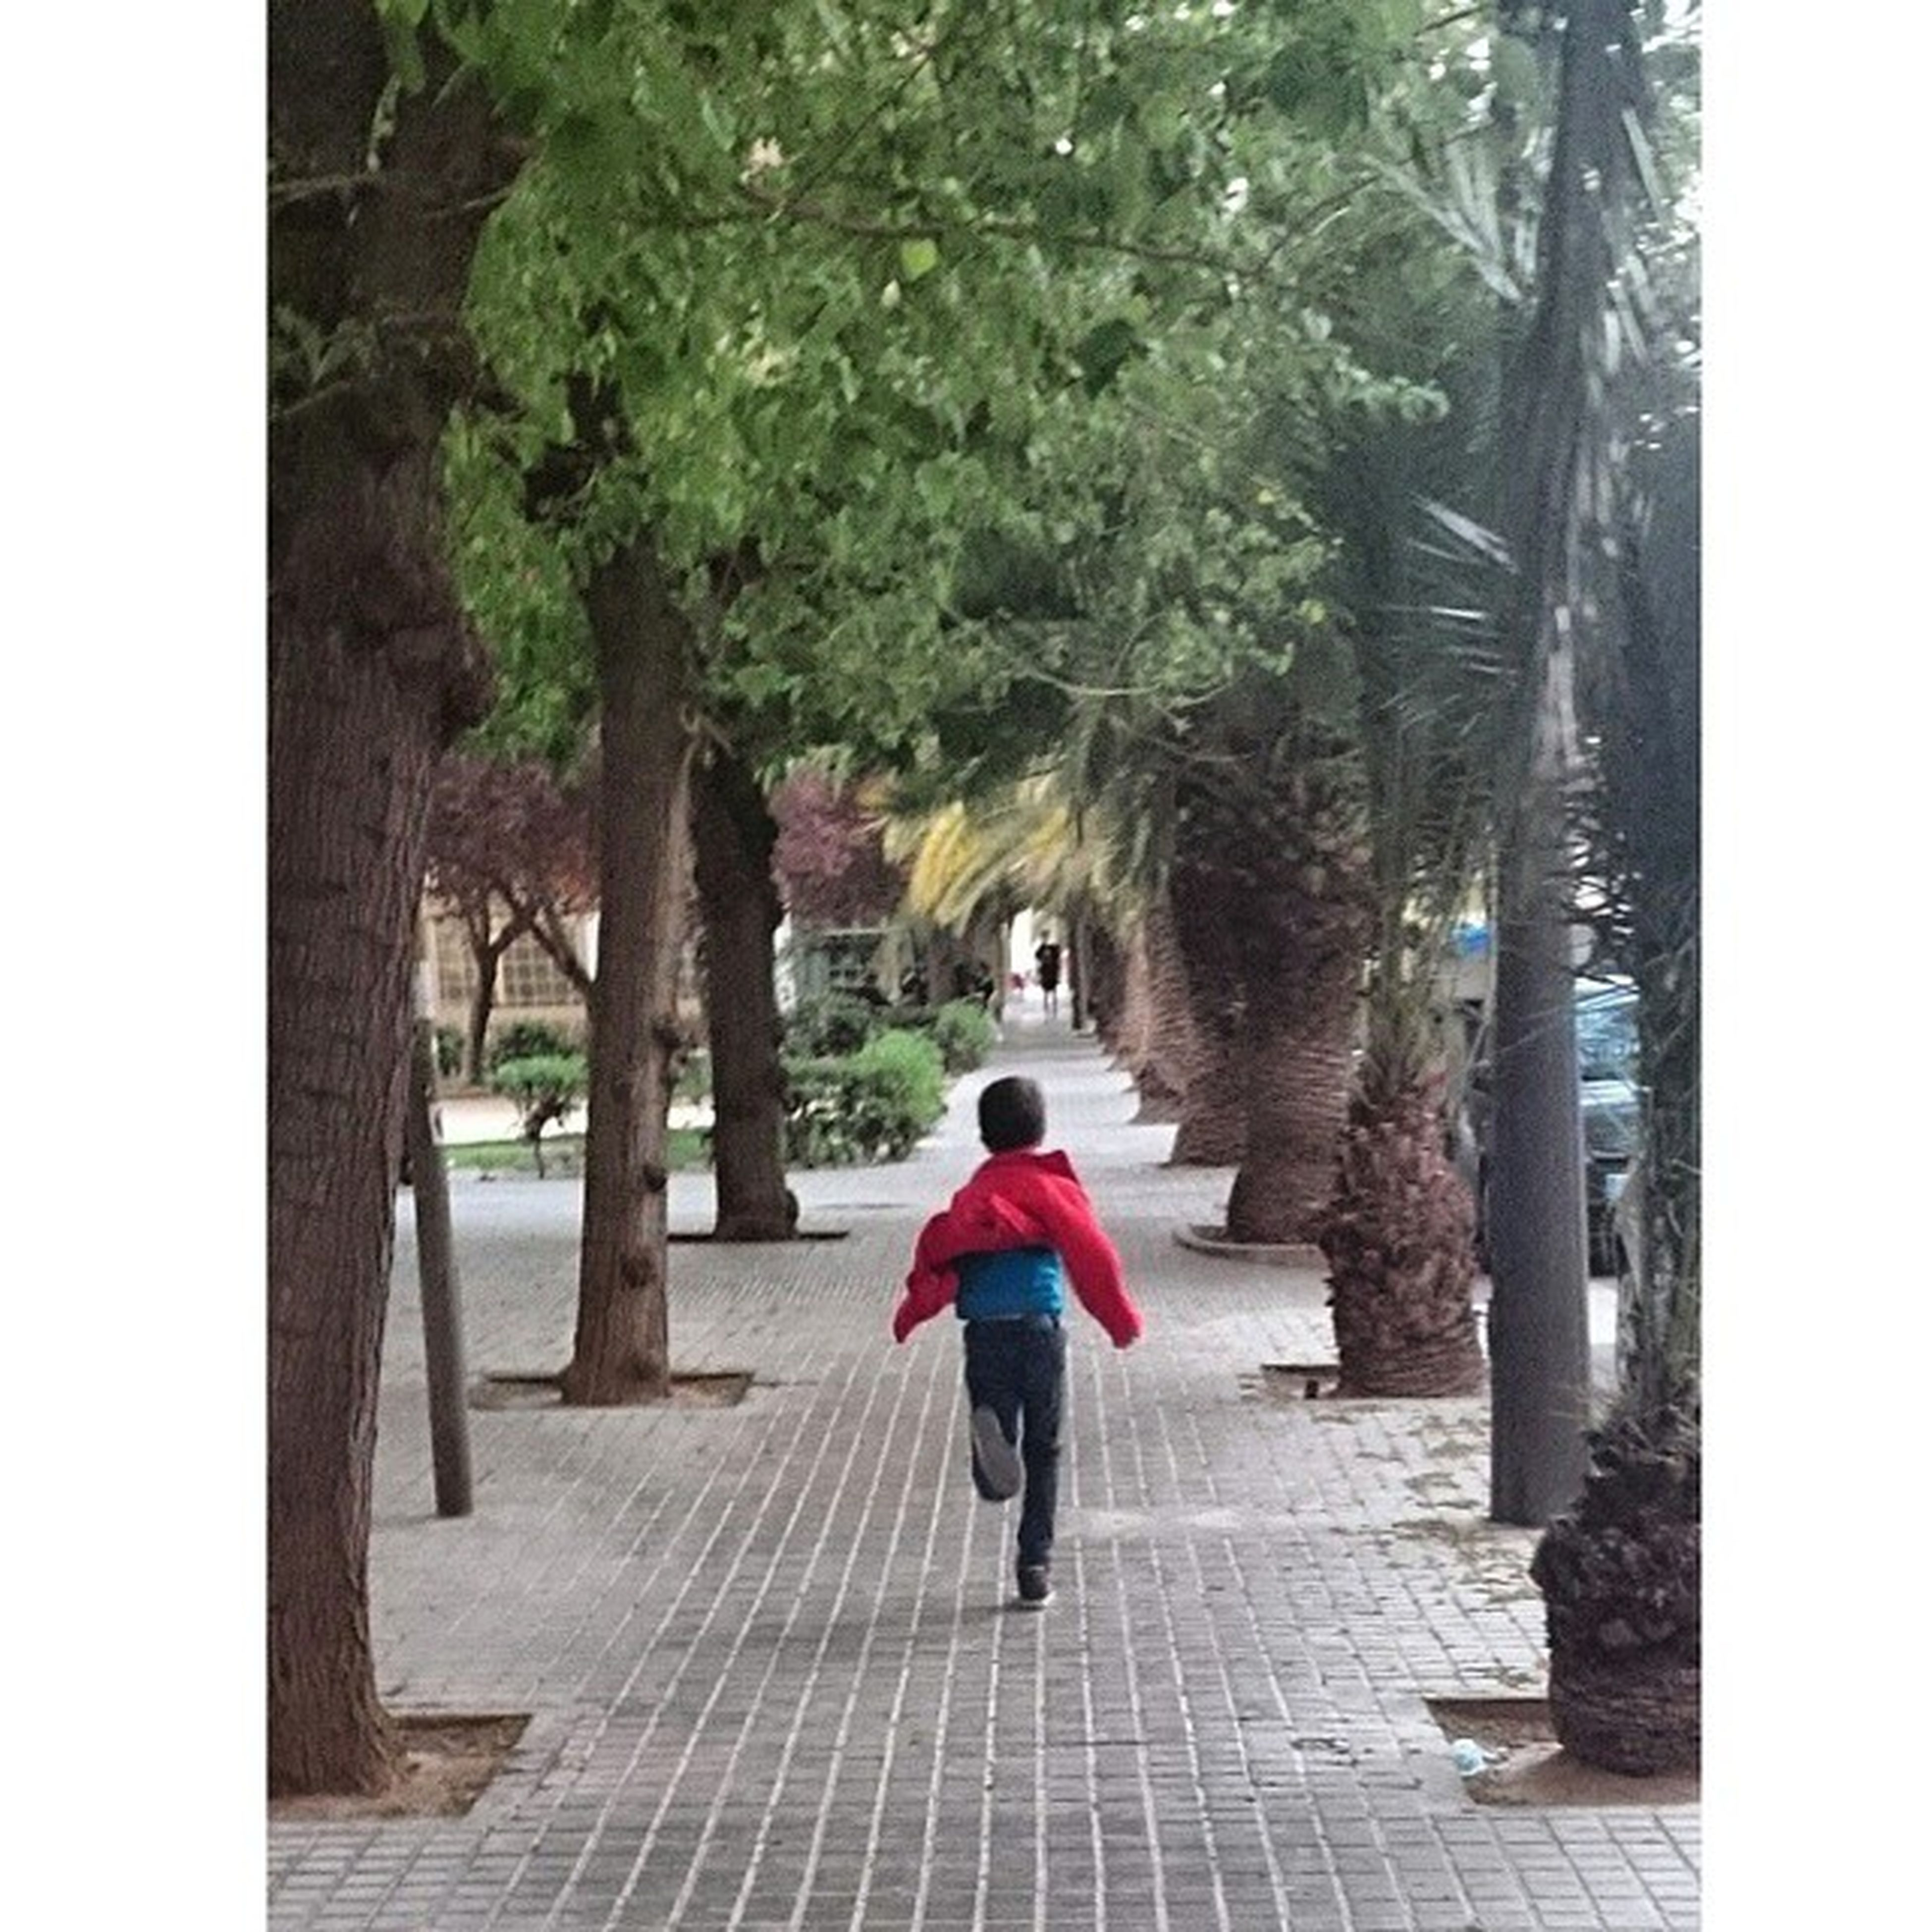 full length, tree, rear view, transfer print, the way forward, walking, lifestyles, footpath, auto post production filter, leisure activity, built structure, person, casual clothing, architecture, building exterior, men, sidewalk, walkway